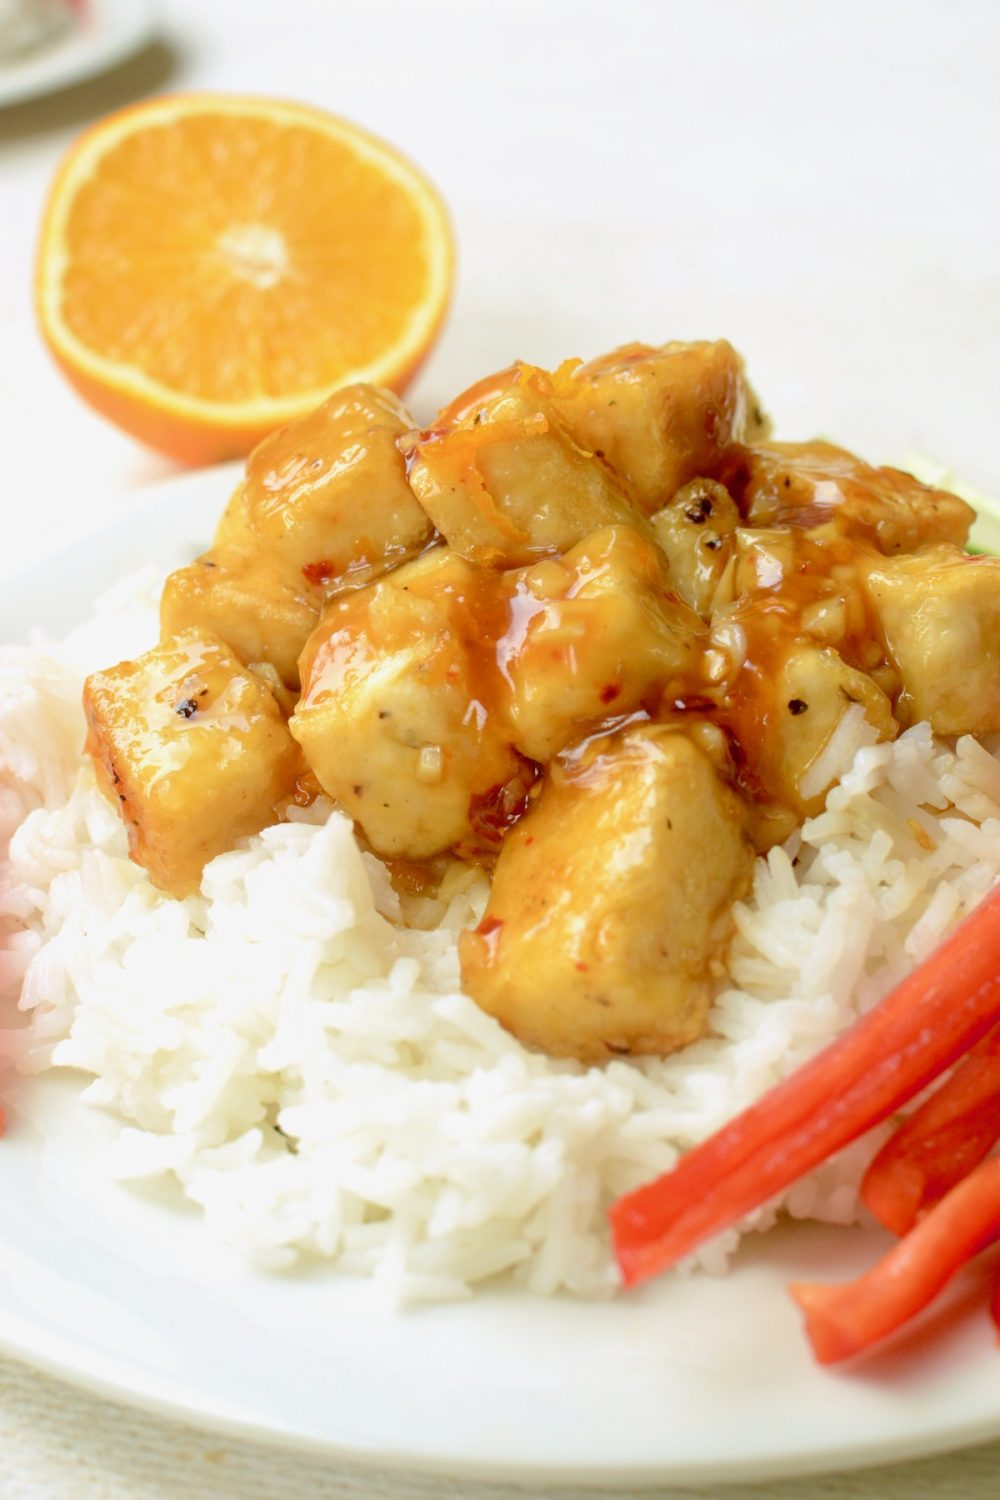 A portion of orange tofu, coated thickly in sauce and served with some white rice alongside some fresh vegetables. A half orange in the background.